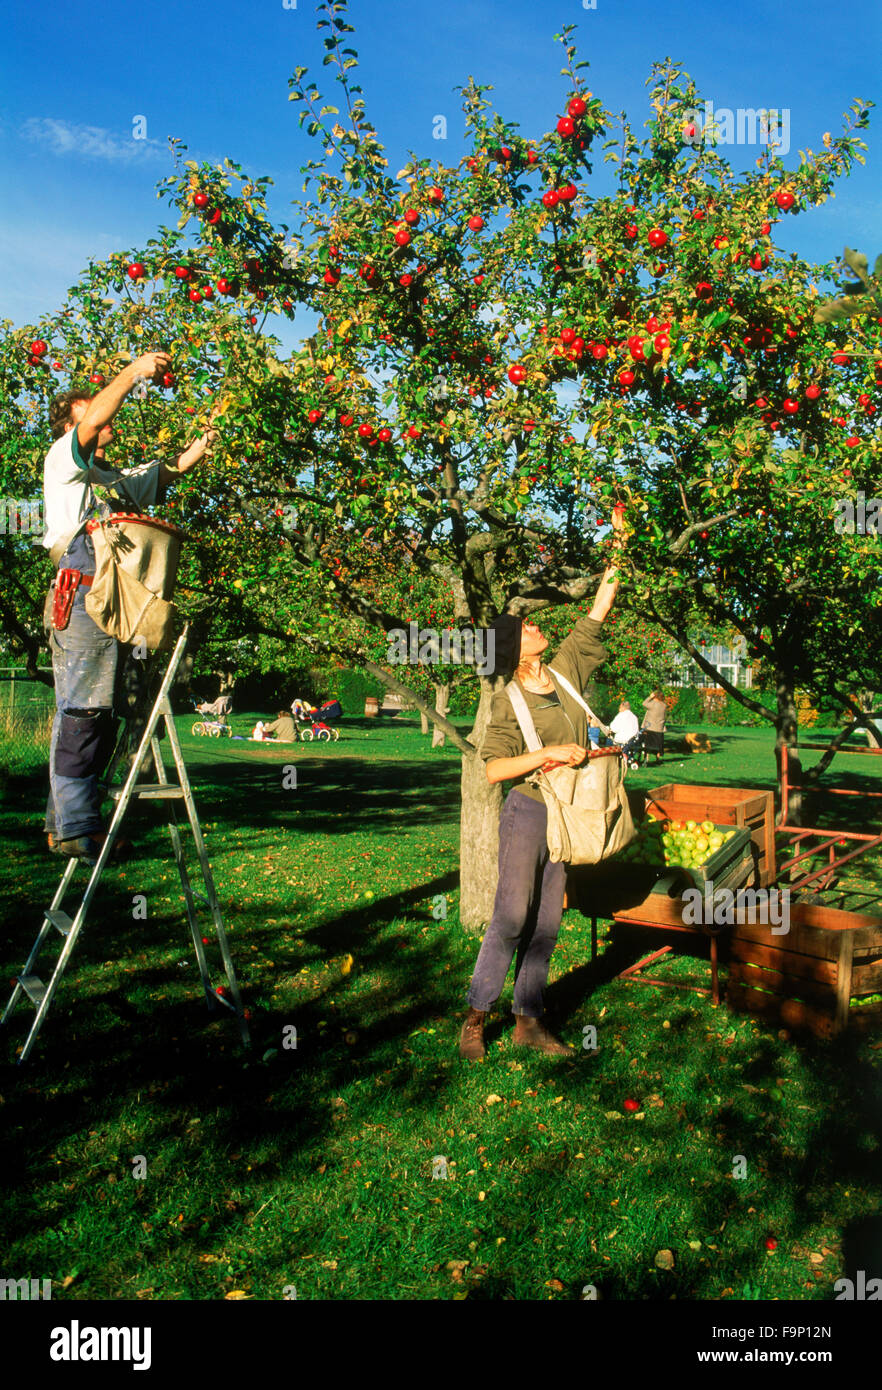 Young man and woman picking apples from tree on farm near Stockholm during annual harvest season - Stock Image